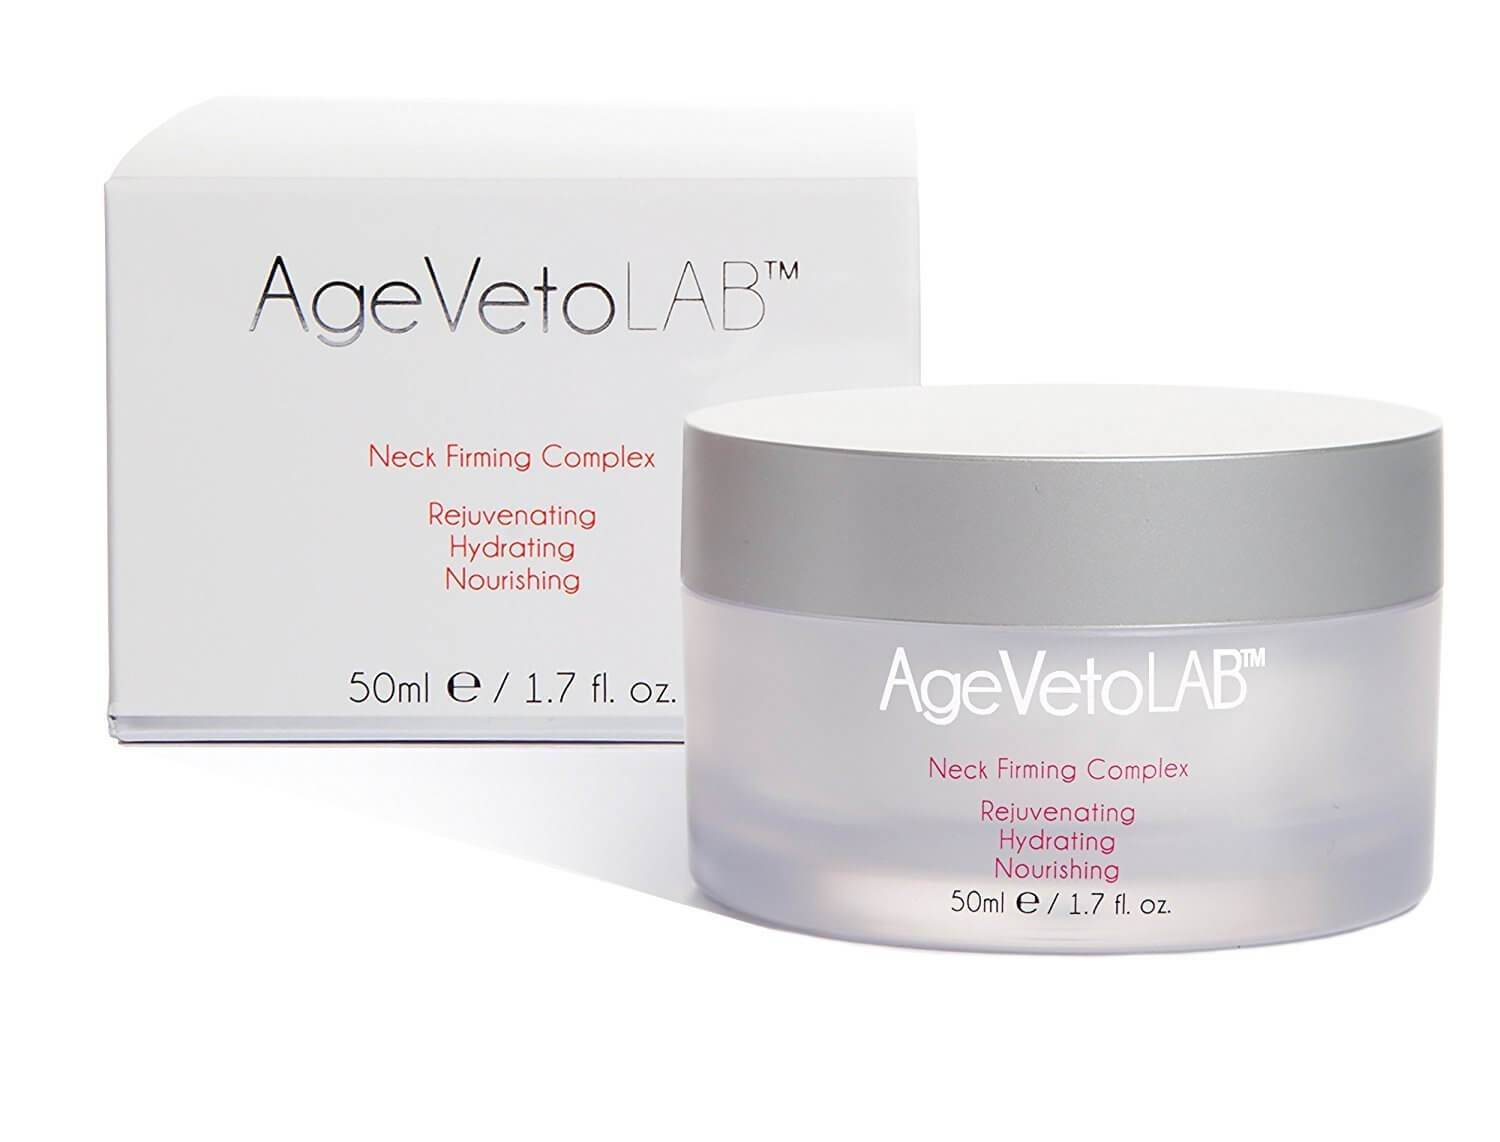 Neck Firming Rejuvenating Chin Moisturizing Slimming Hydrating Nourishing Cream Face Care | AgeVeto  - Medactiveshop